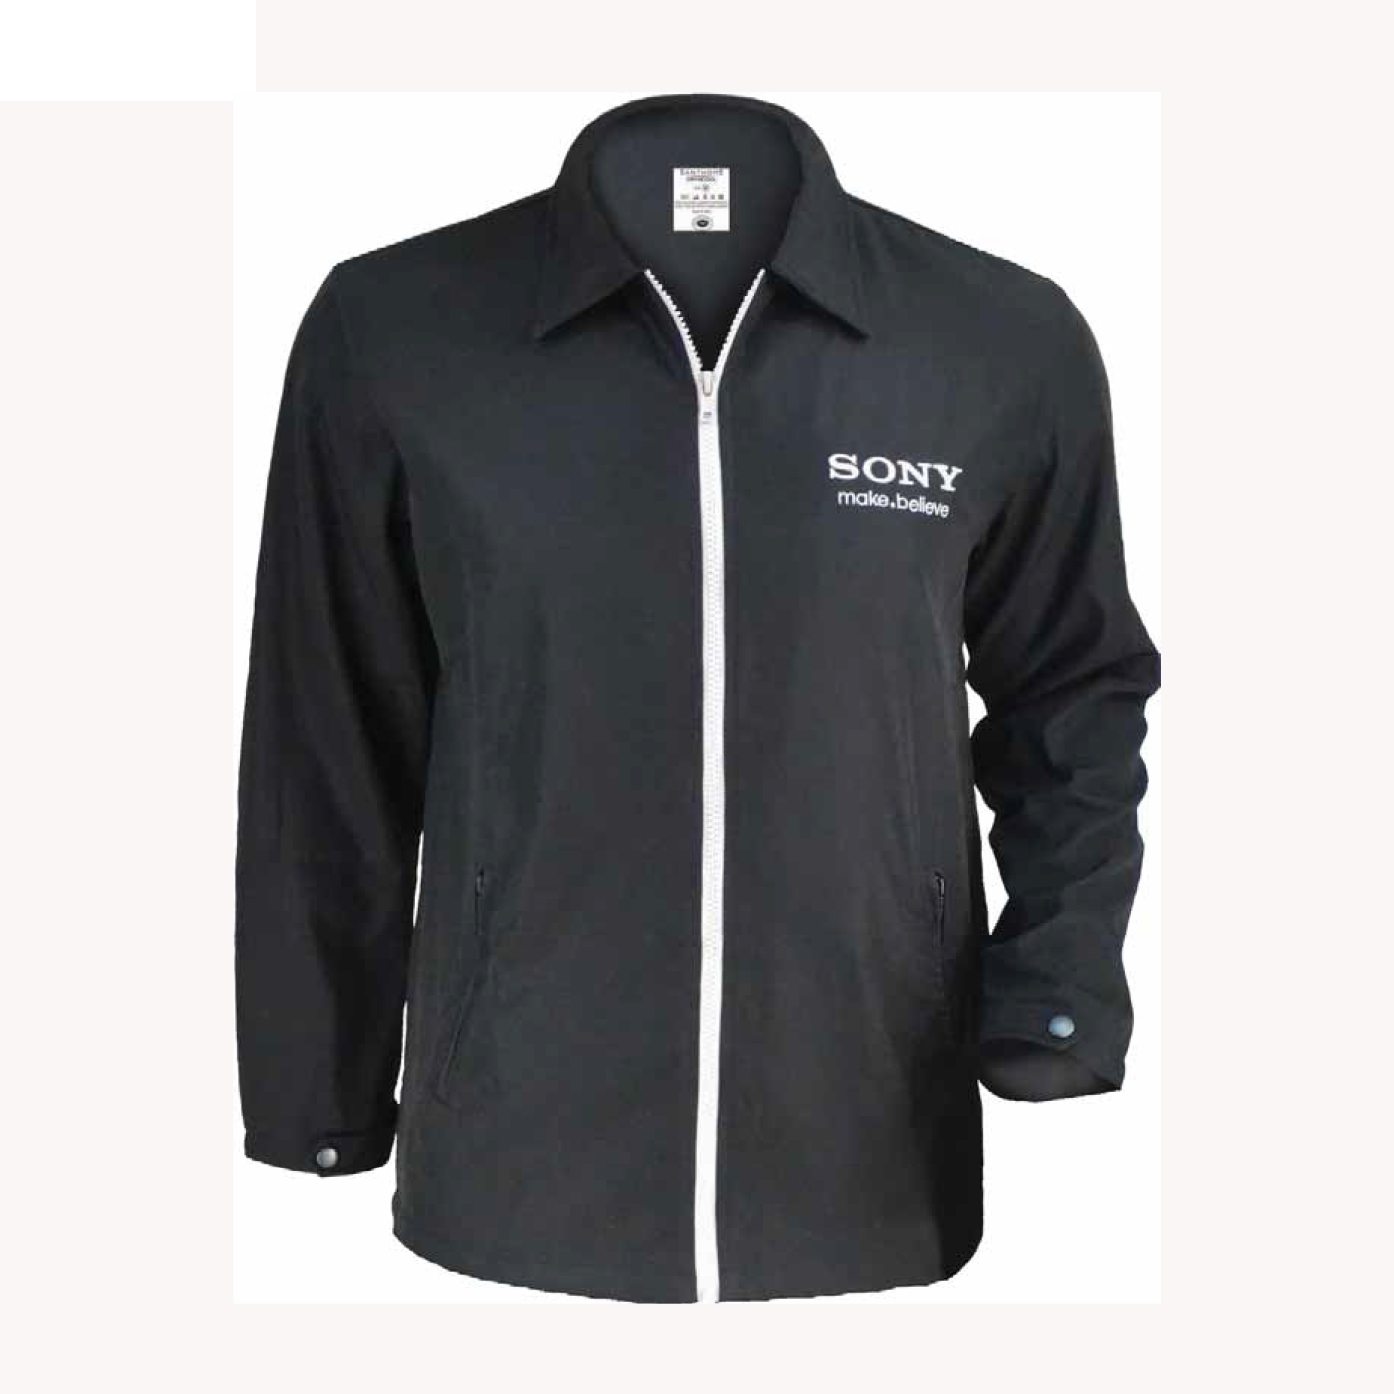 Customized Winter Jacket Sony Uniforms Brands Gifts